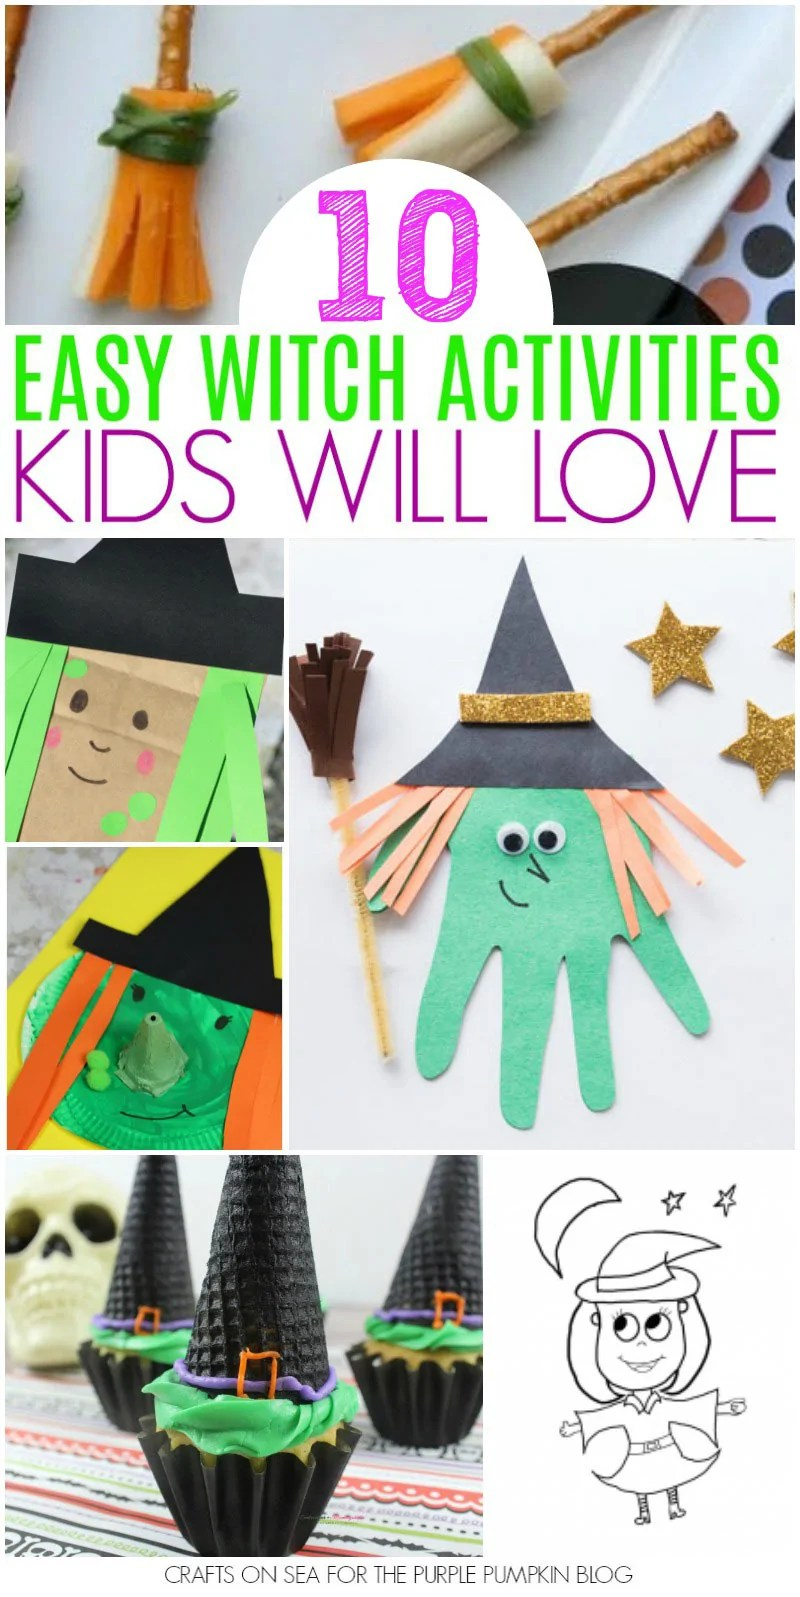 10 Easy Witch Activities Kids Will Love